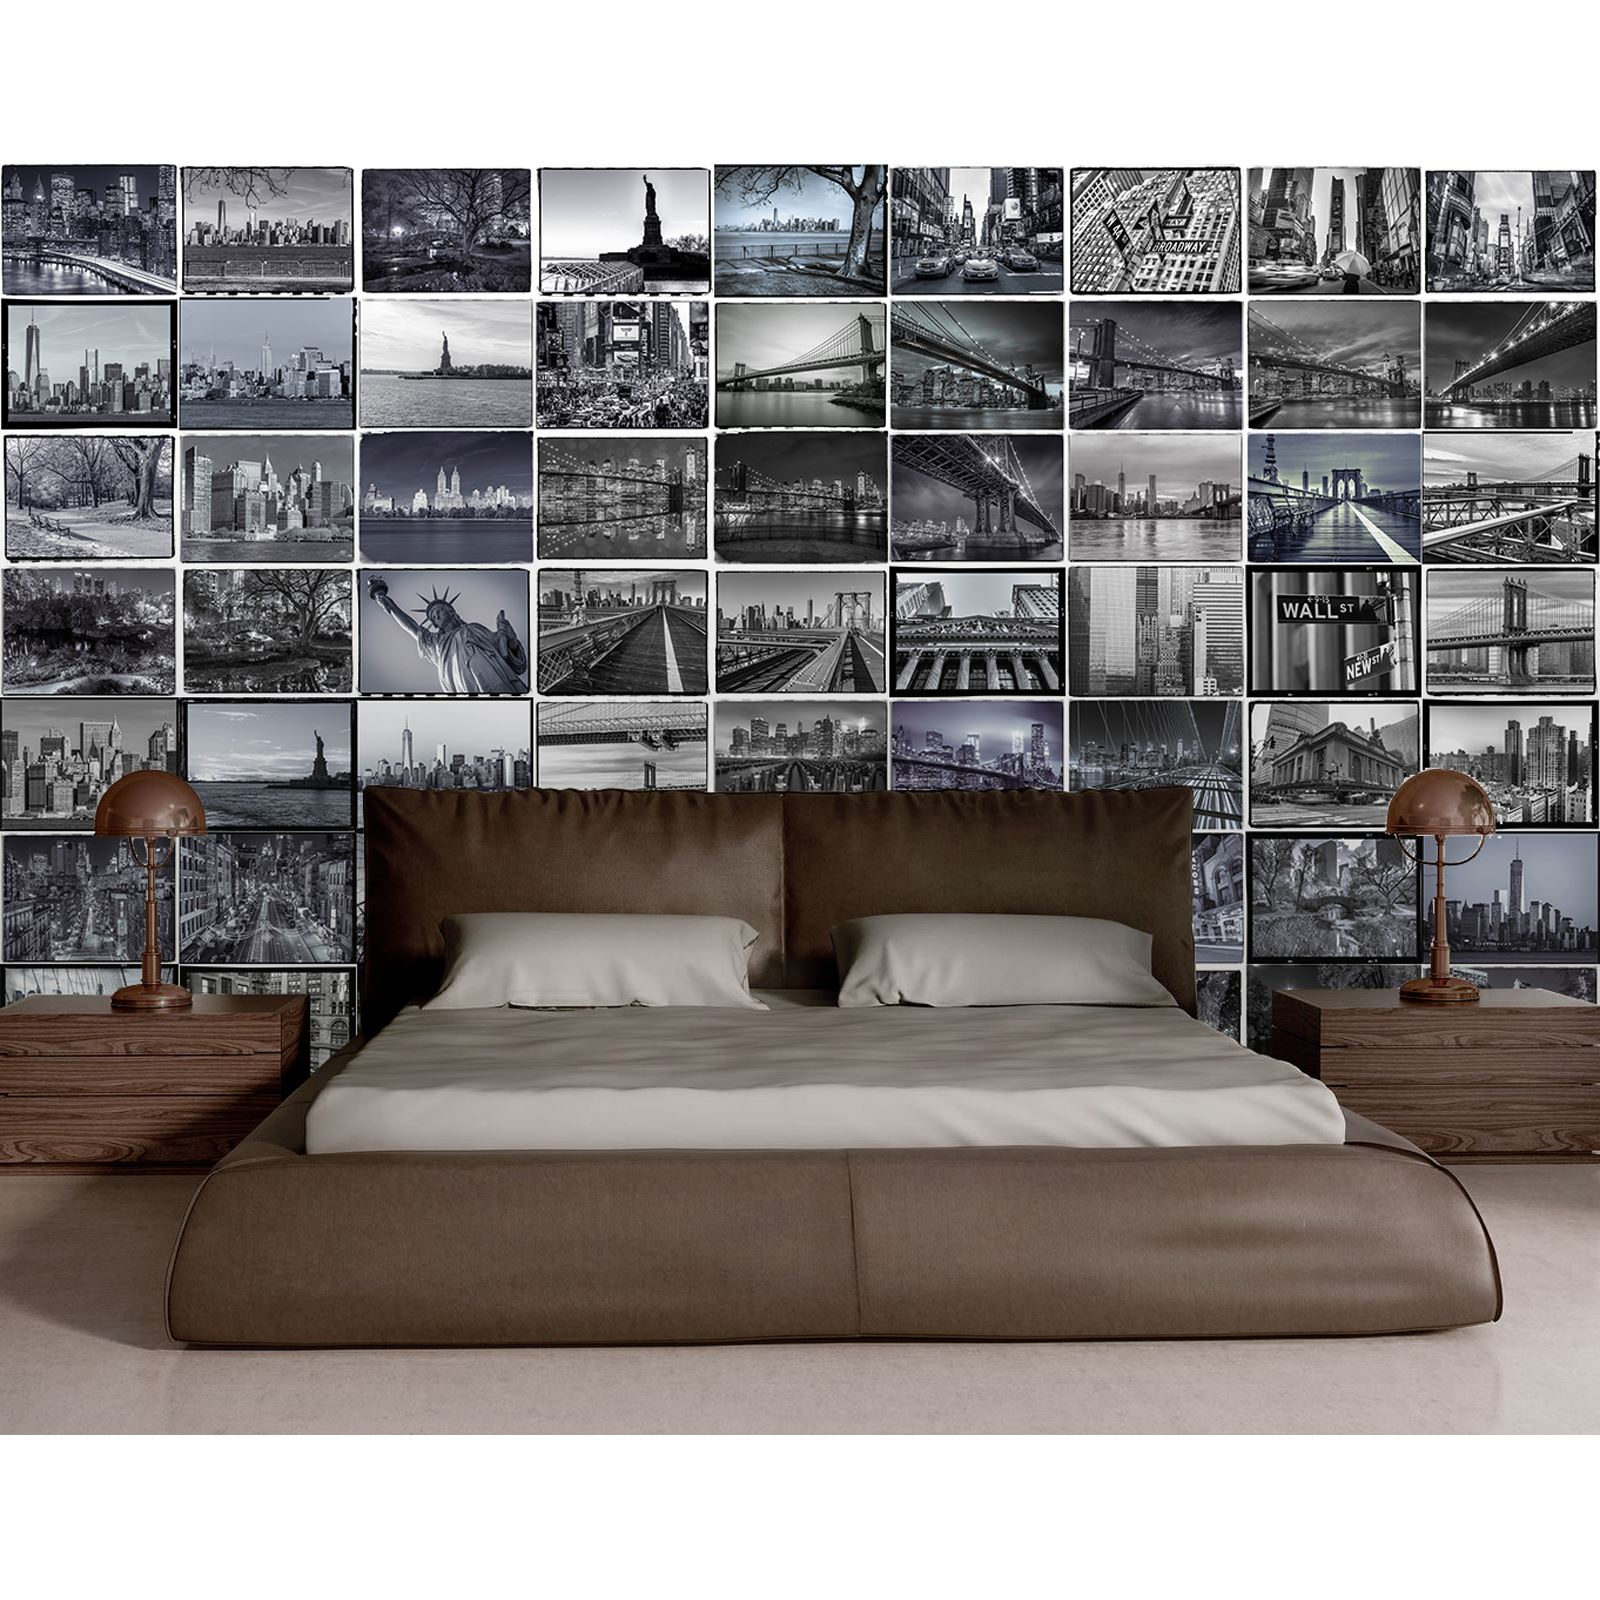 World cities wall murals london paris new york more for Black and white paris wall mural